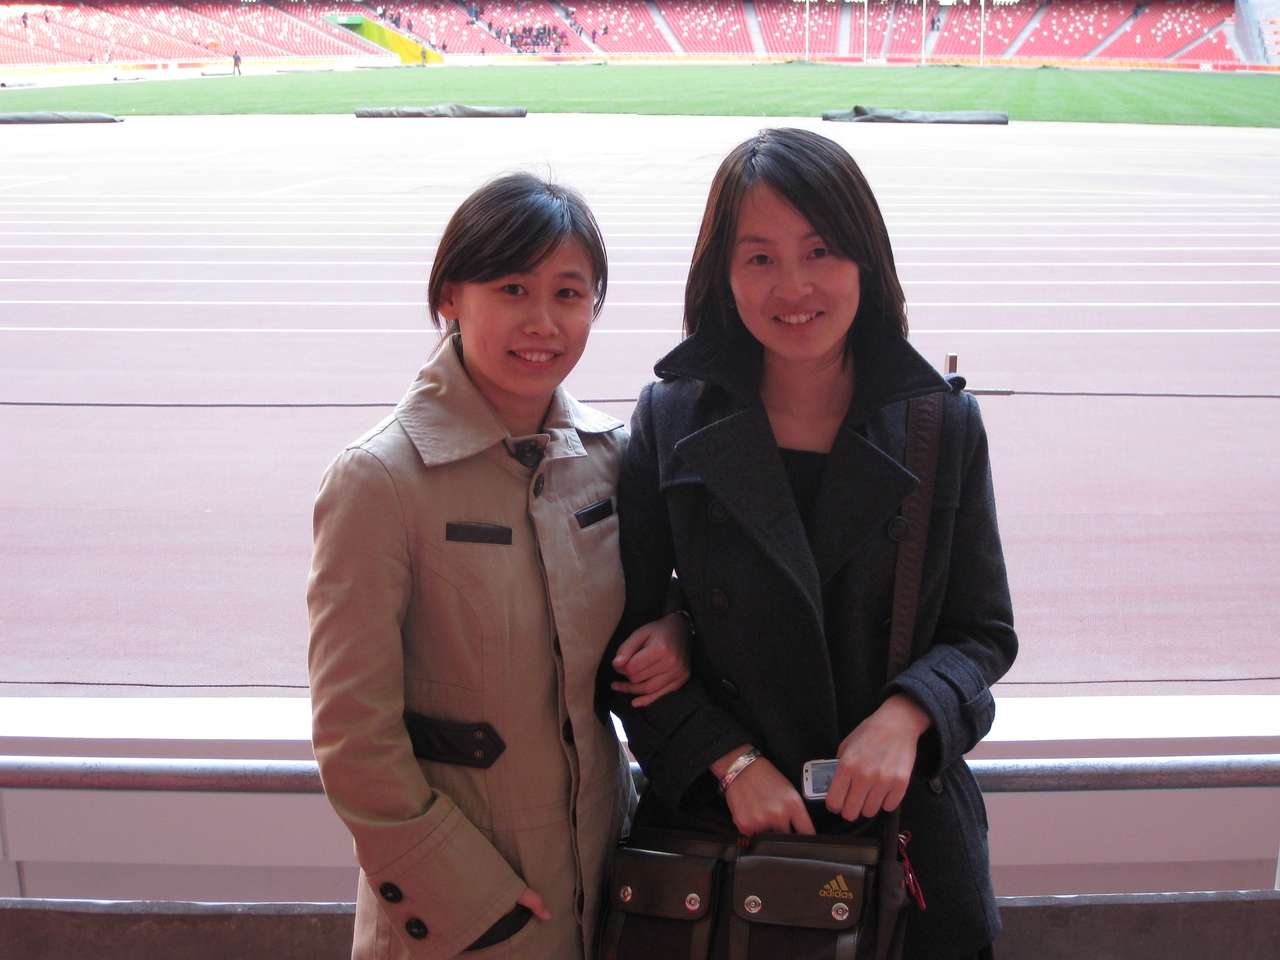 Shuilian & Xin who showed us around Beijing & took us to the Birds Nest.